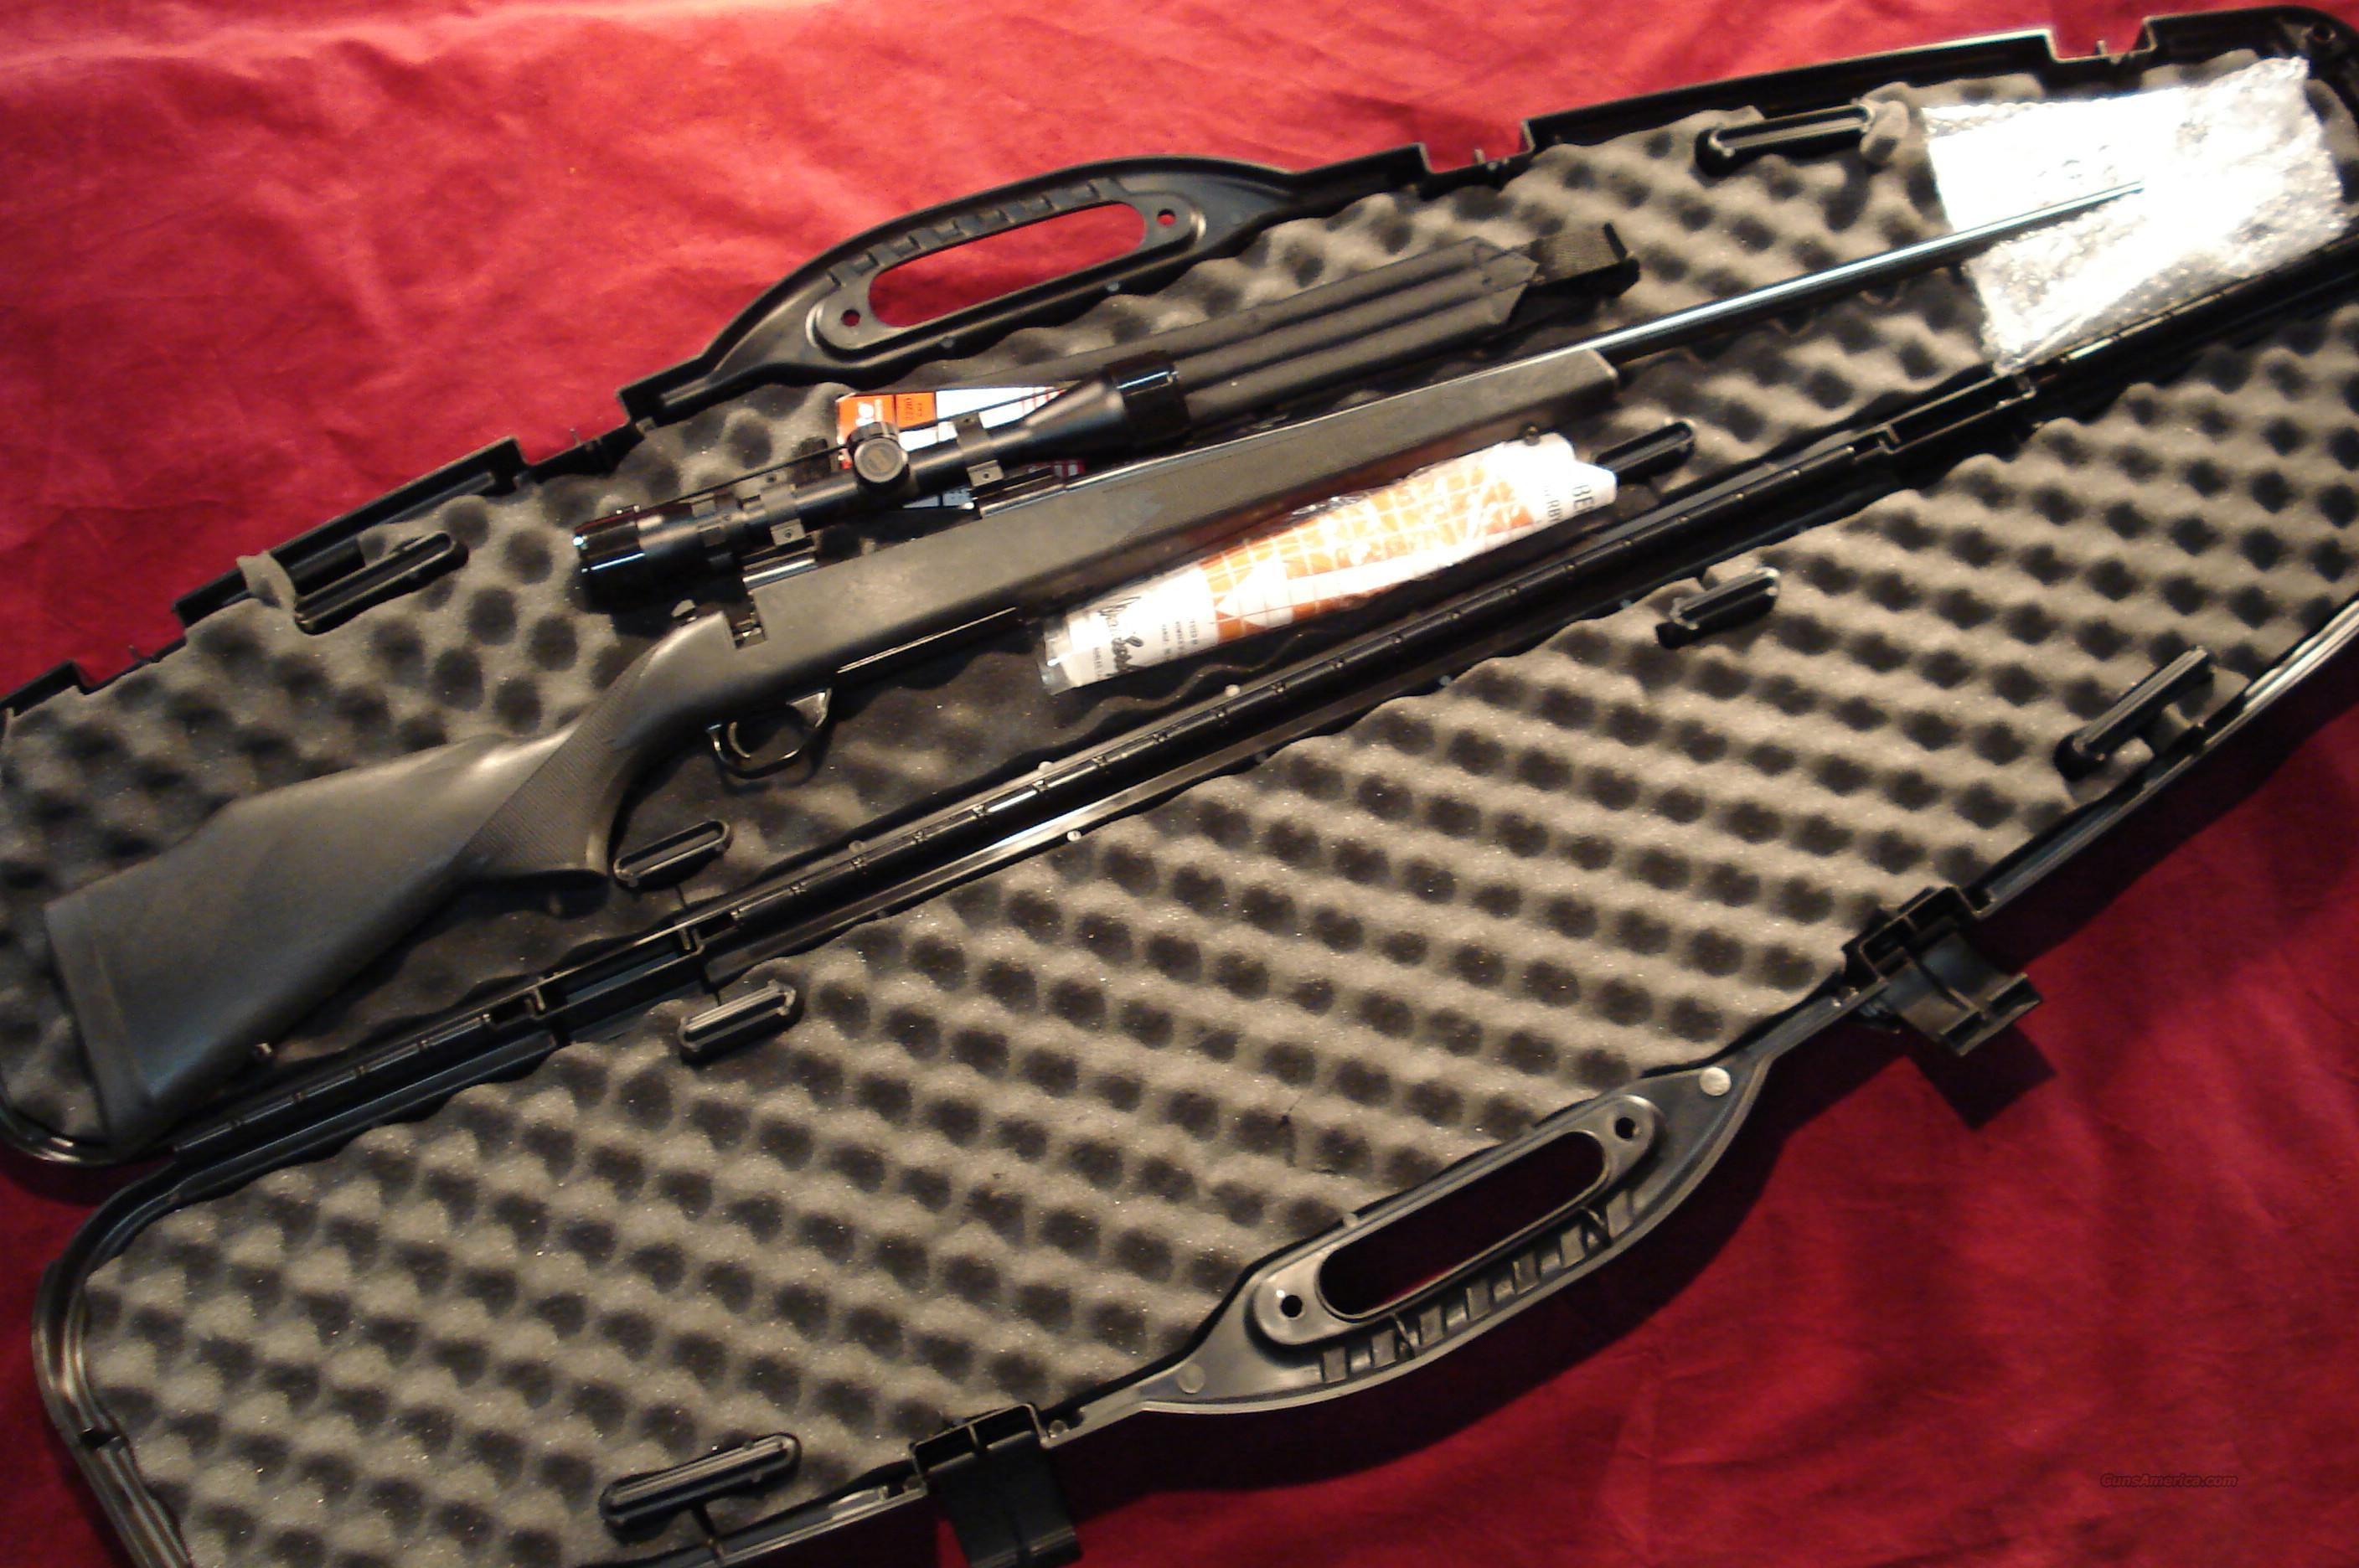 WEATHERBY VANGUARD SYNTHEIC 270 CAL. WITH SCOPE PACKAGE NEW  Guns > Rifles > Weatherby Rifles > Sporting